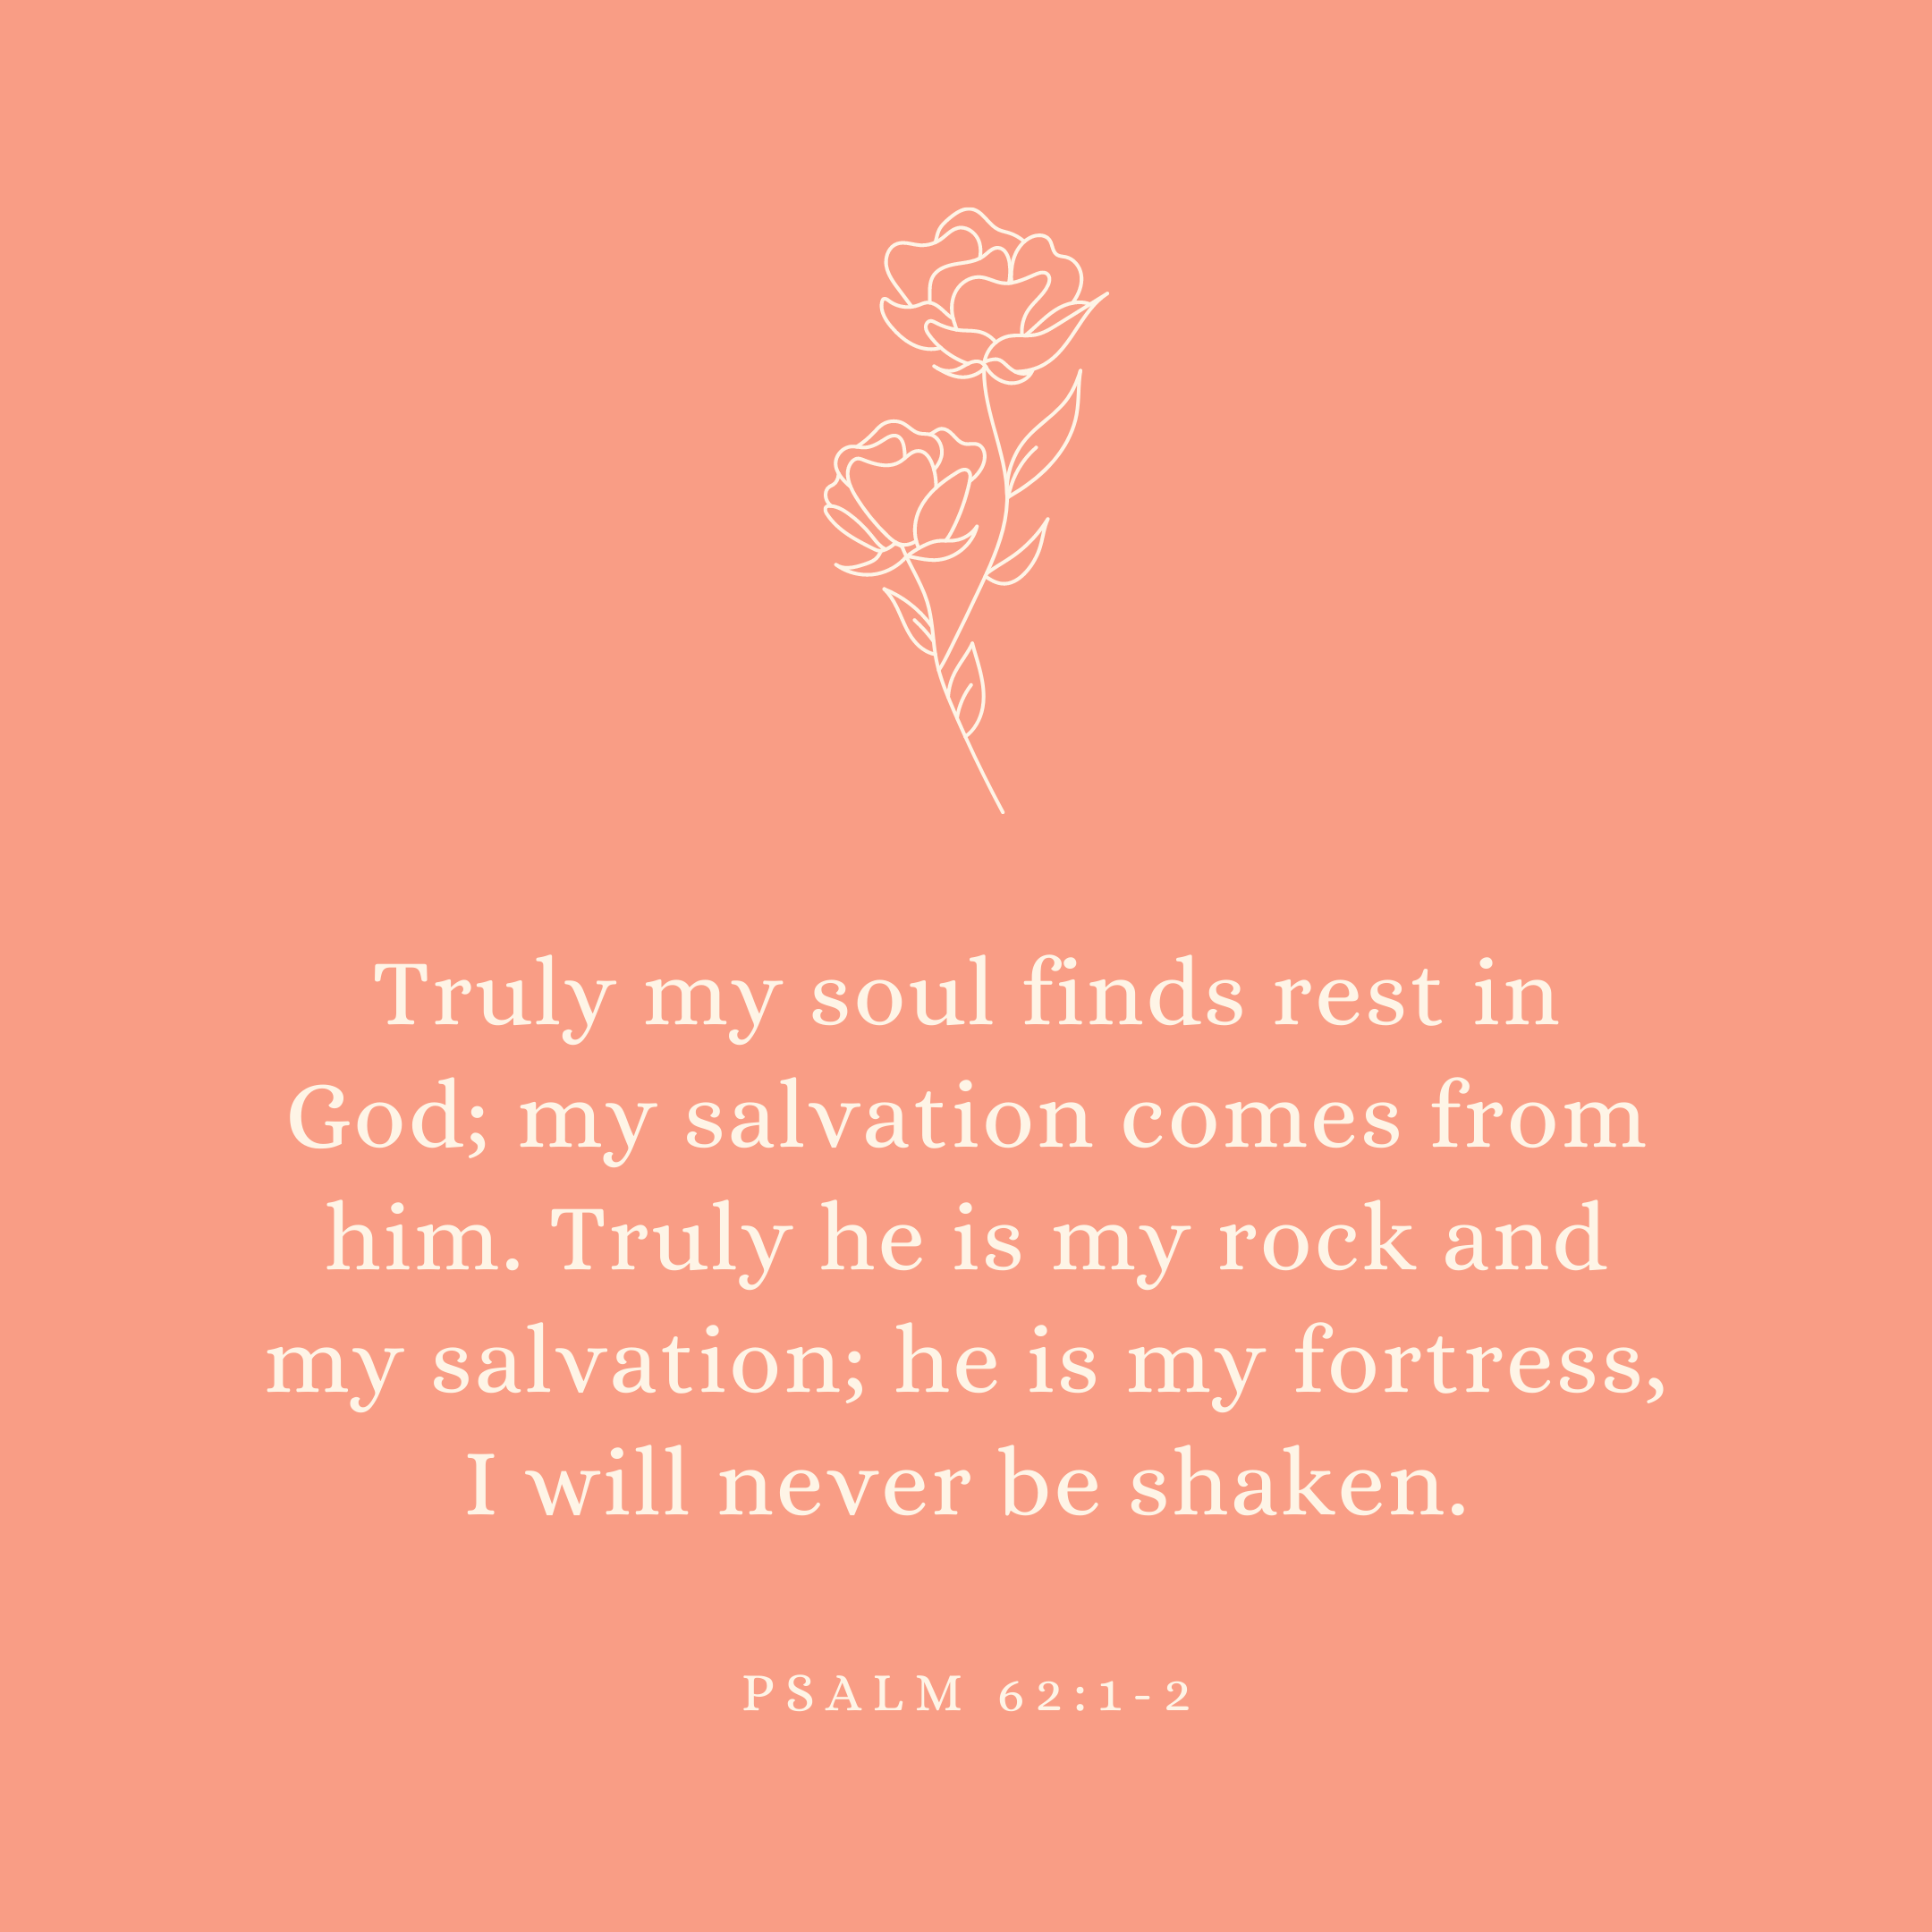 Psalm 62:1-2 Truly my soul finds rest in God; my salvation comes from him. Truly he is my rock and my salvation; he is my fortress, I will never be shaken.